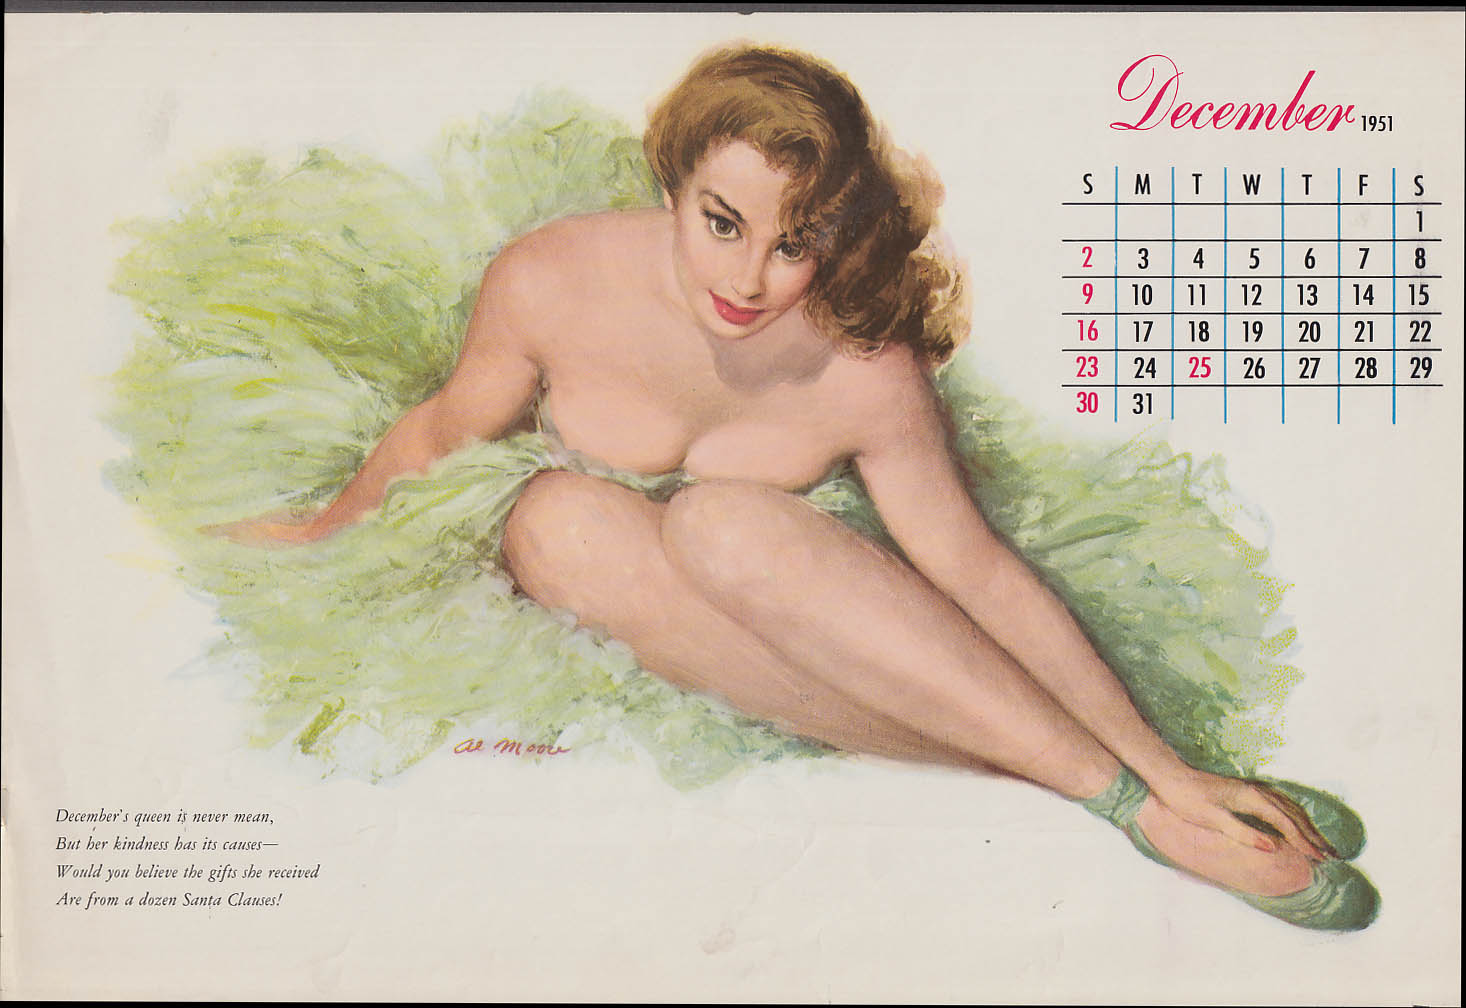 Al Moore pin-up calendar page 12 1951 brunette in green tutu shows cleavage